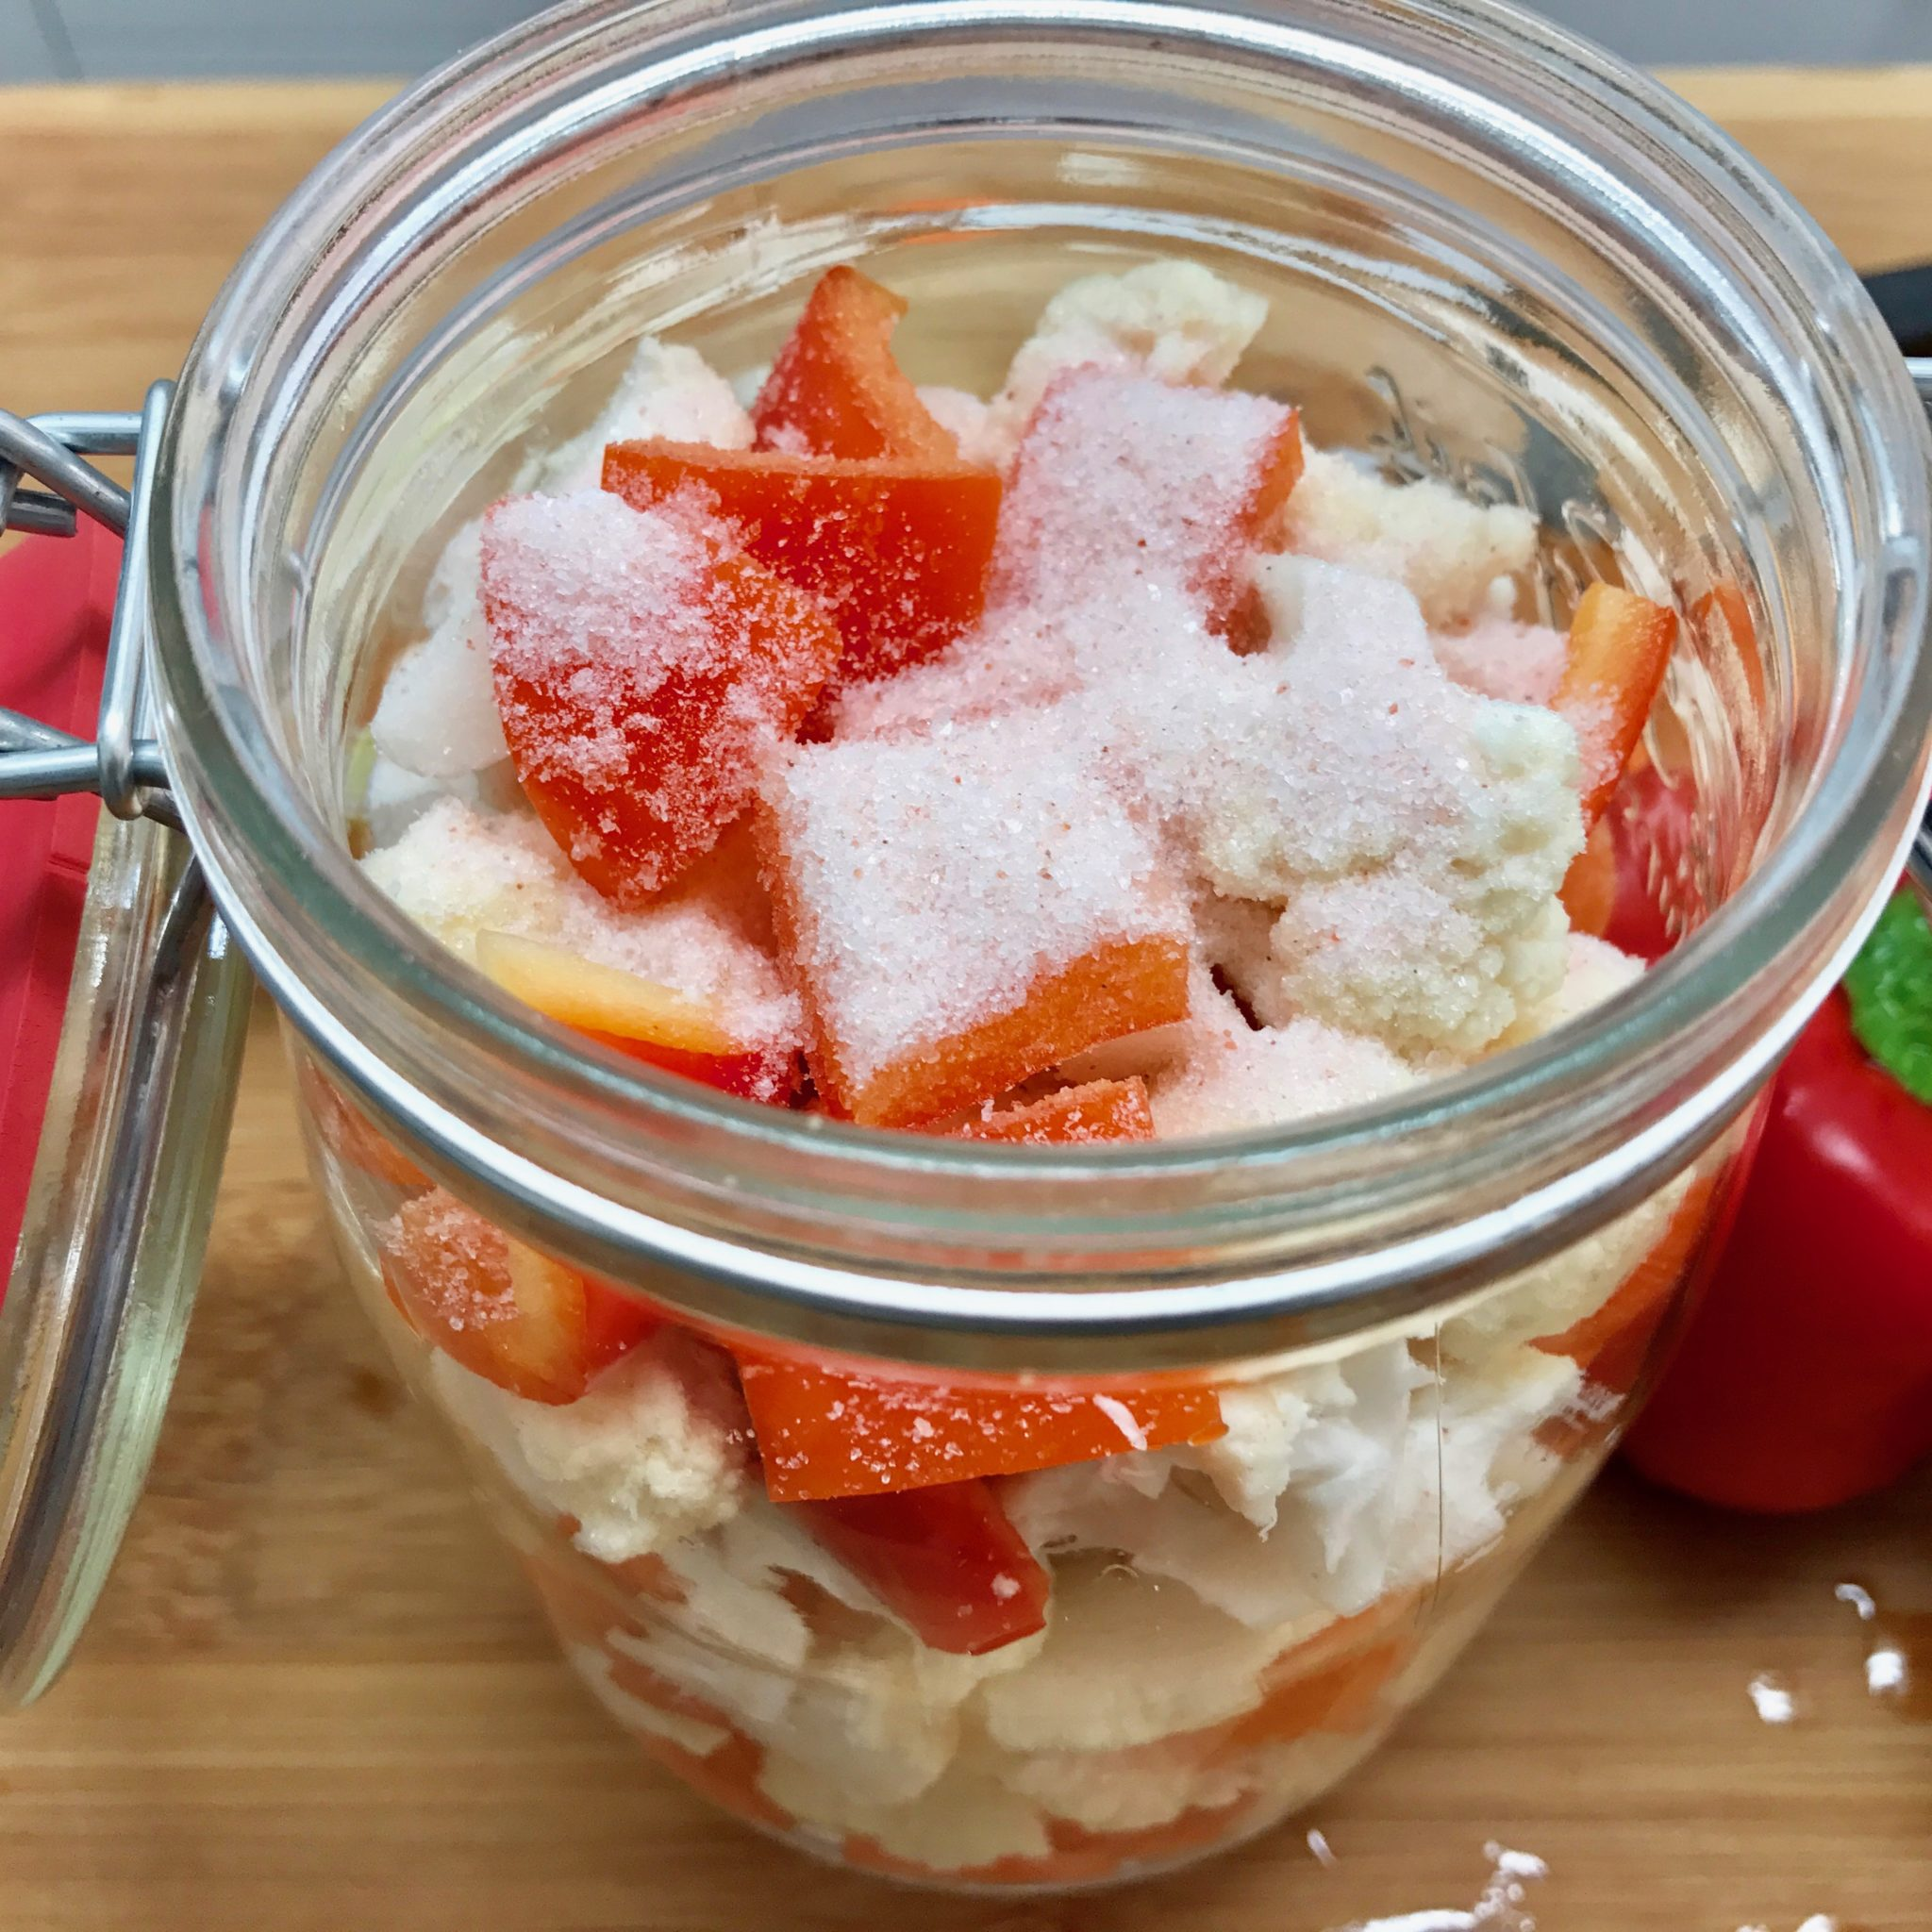 Put cut vegetables in the jar and add salt